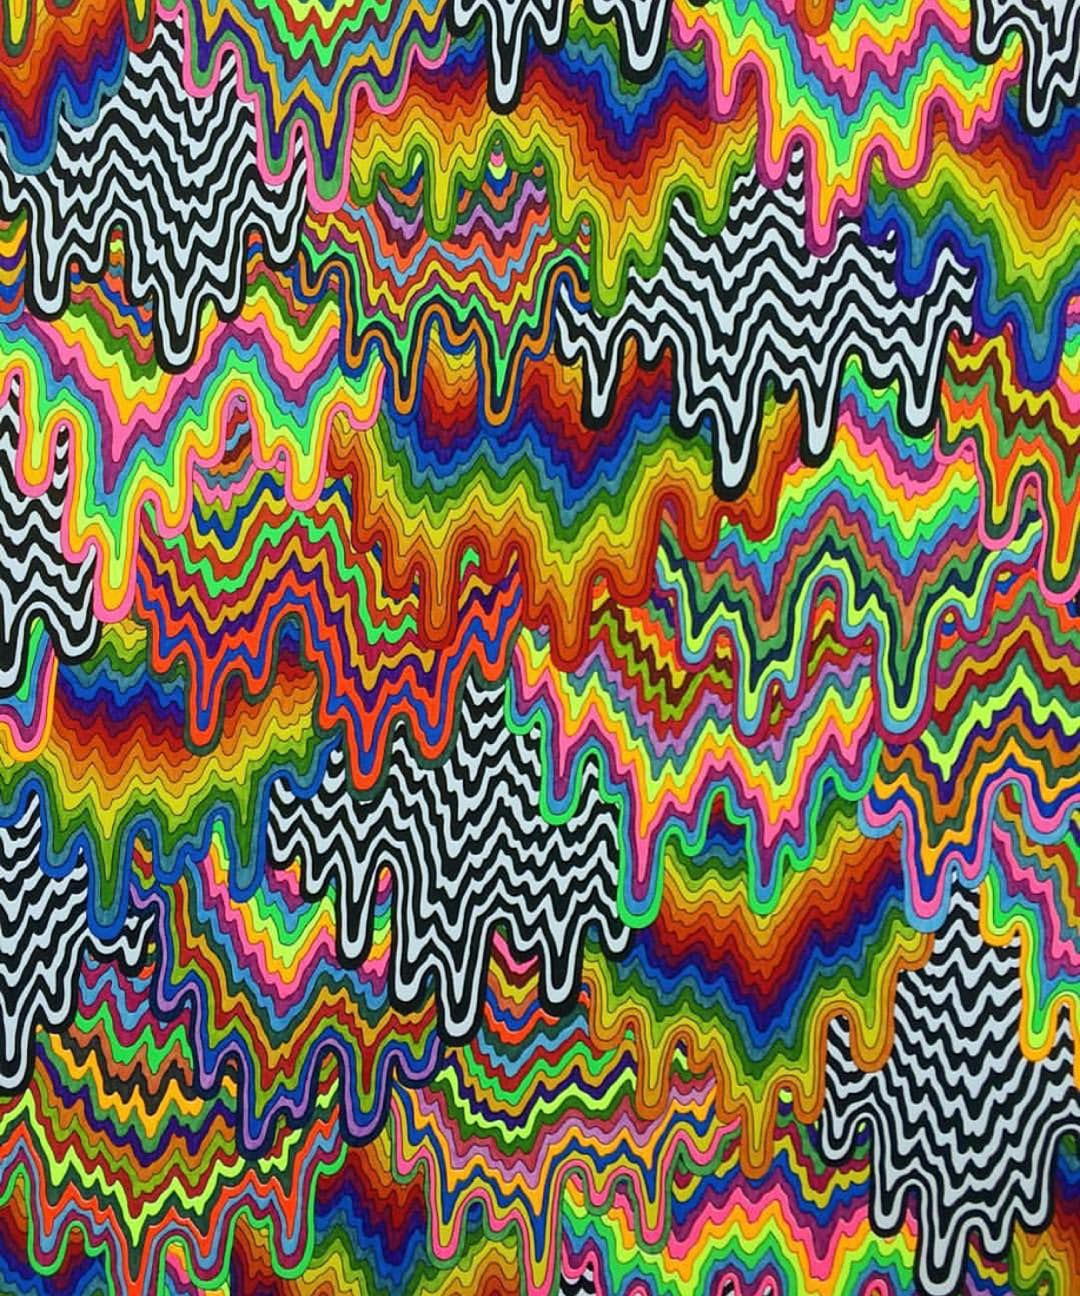 Curaaated Com Trippy Painting Trippy Drawings Psychedelic Art